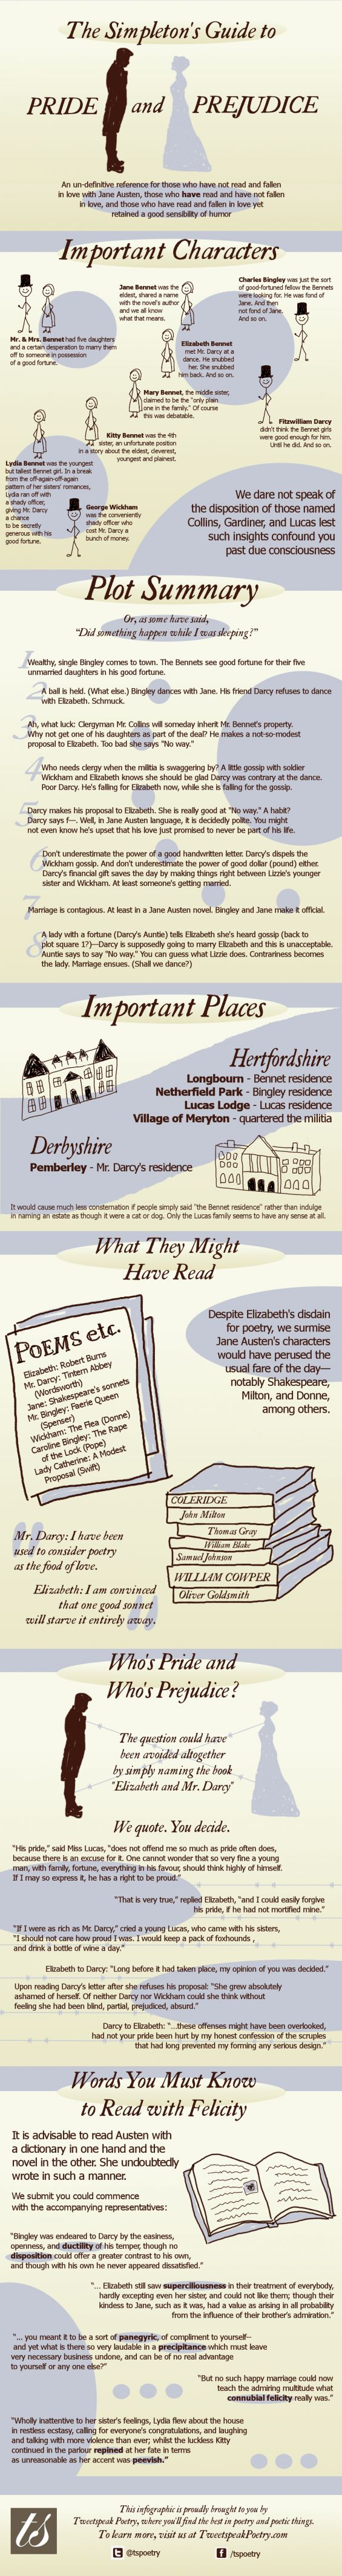 """A clear infographic on """"Pride and Prejudice""""  Also by Tweetspeak Poetry, check these Pride & Prejudice poems, etc. (we surmise)  A Red, Red Rose. Robert Burns  Tintern Abbey. William Wordsworth  Sonnet 116. William Shakespeare  The Faerie Queene, Dedicatory Sonnets. Edmund Spenser  The Flea. John Donne  The Rape of the Lock. Alexander Pope  A Modest Proposal. Jonathan Swift"""